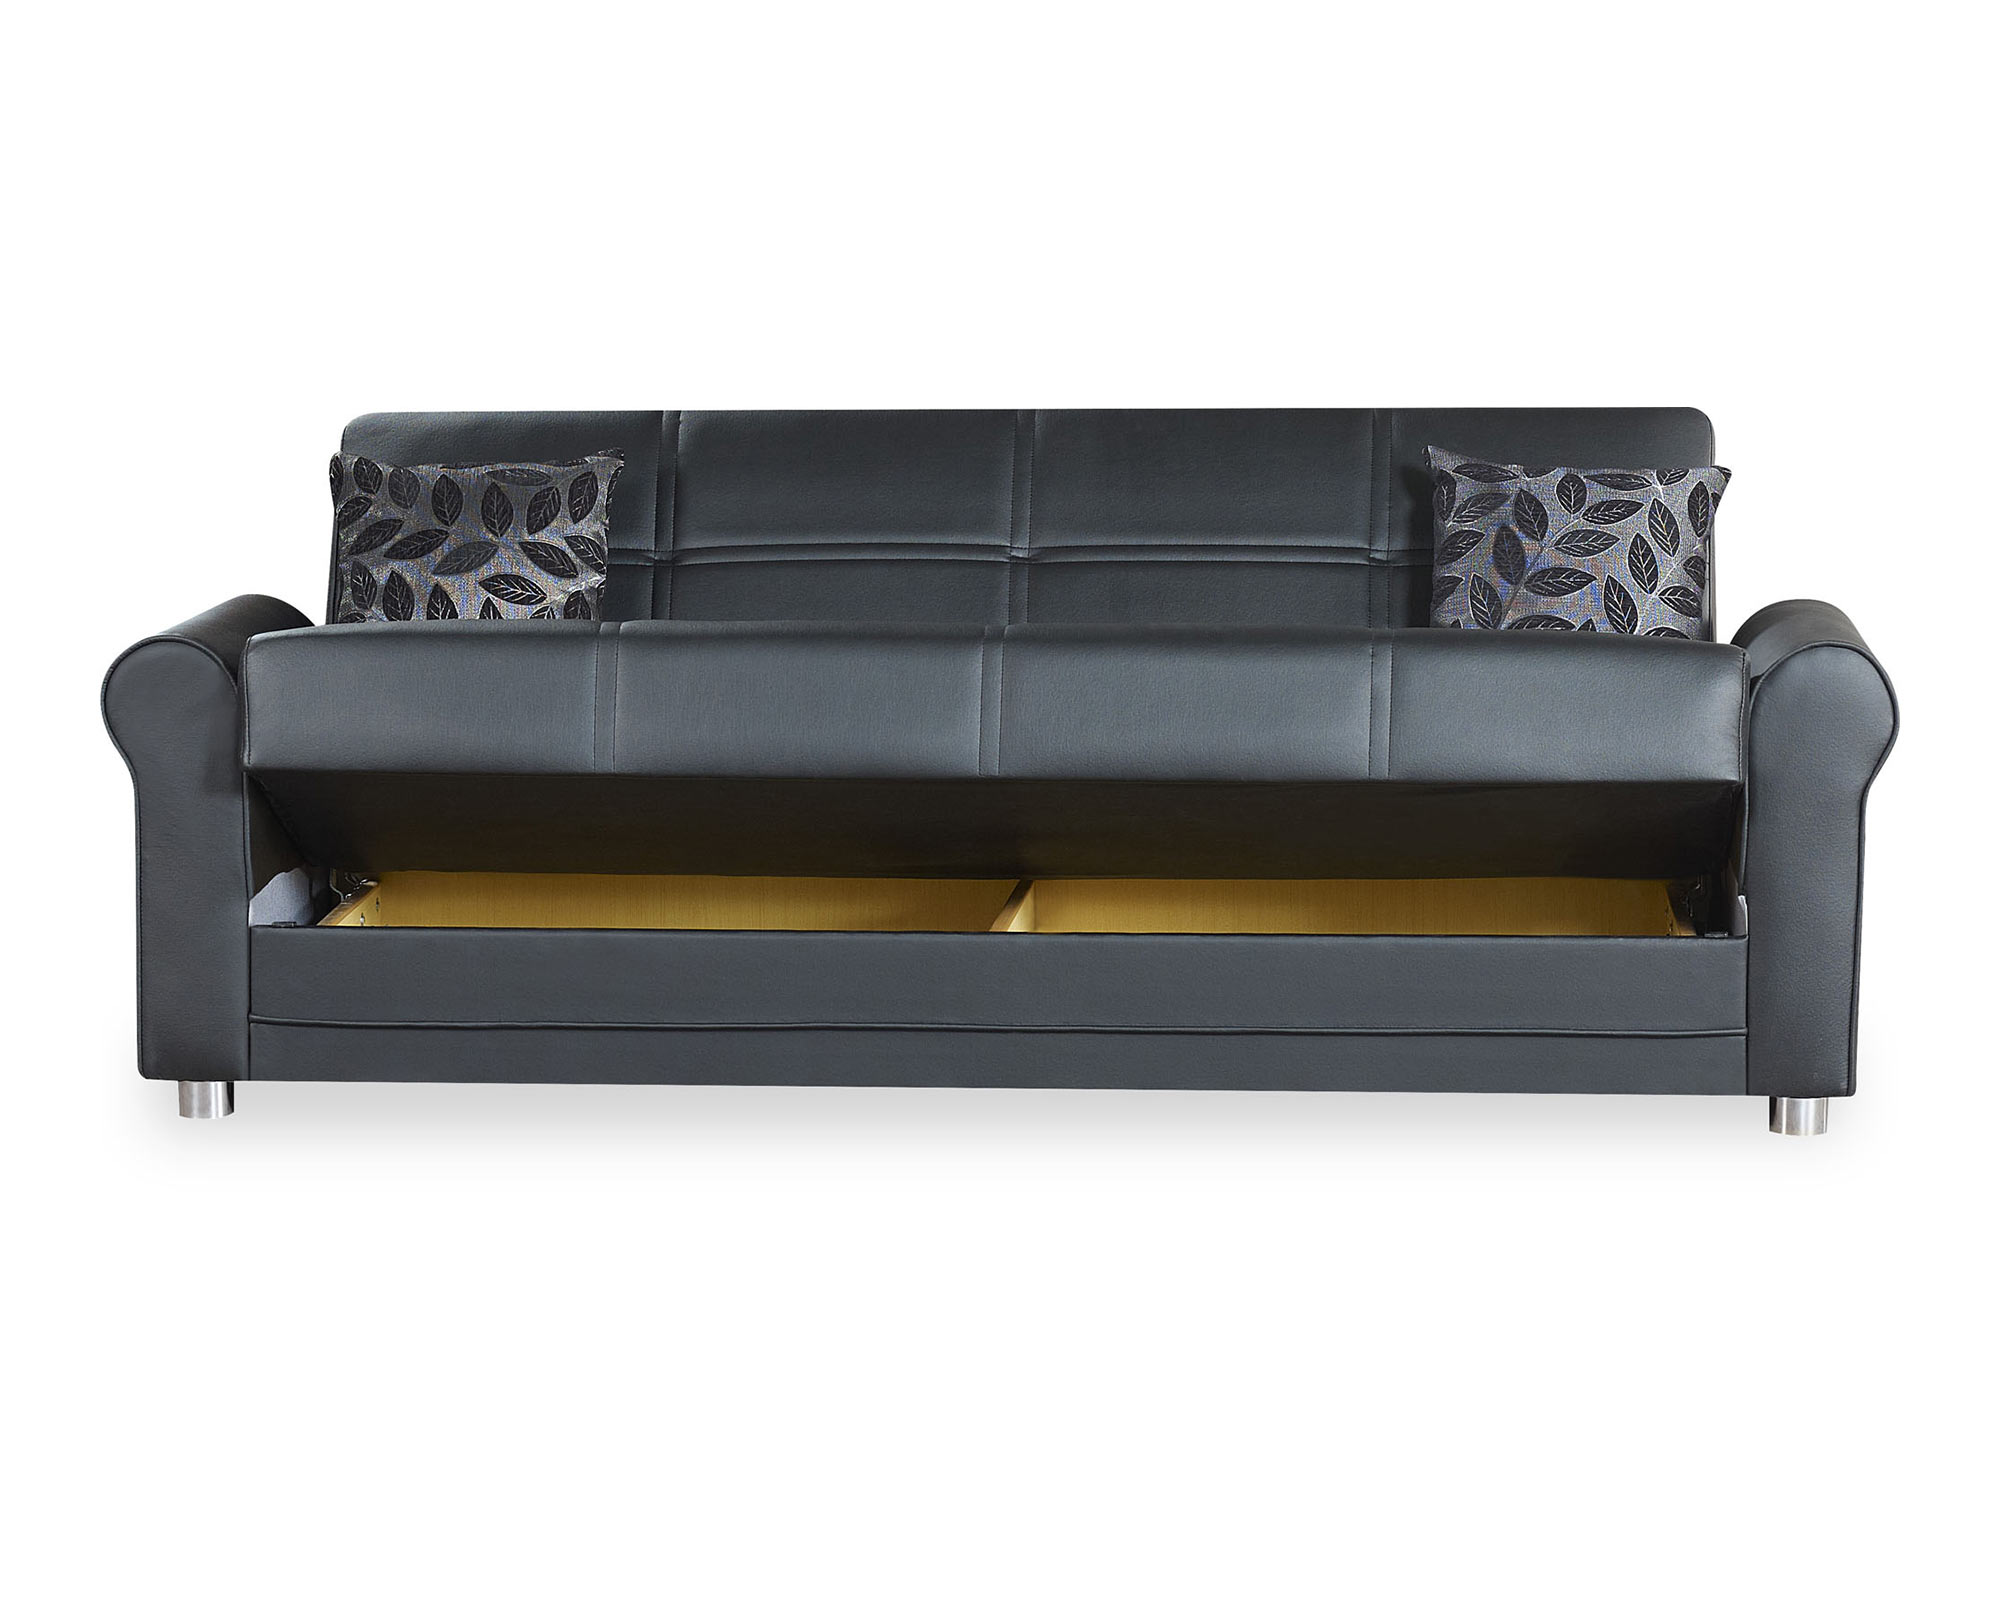 Avalon Plus Black PU Leather Convertible Sofa by Casamode